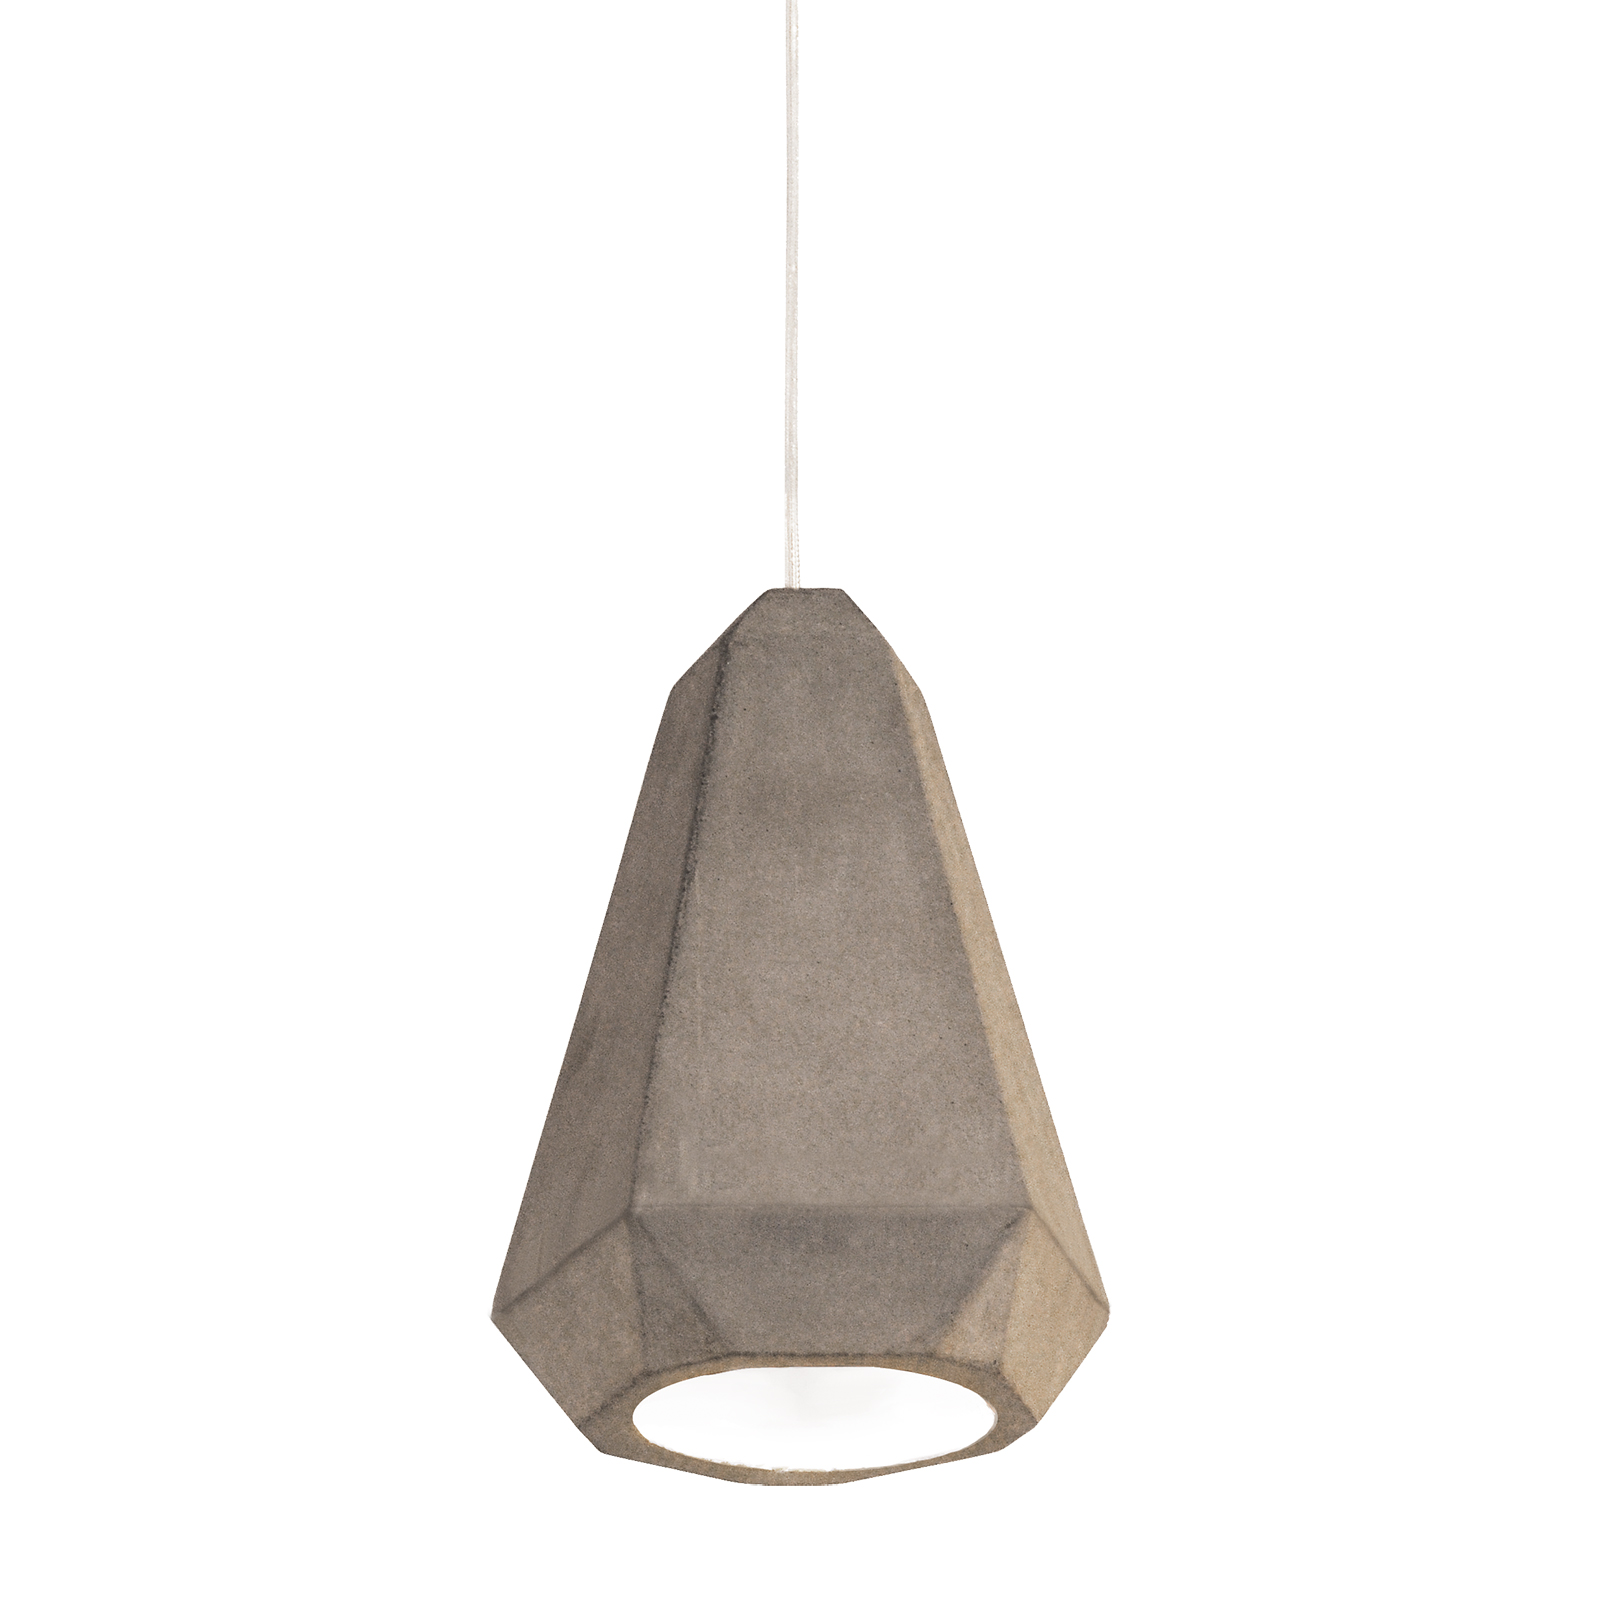 finddesign lights lamp concrete pendant conical product lighting category